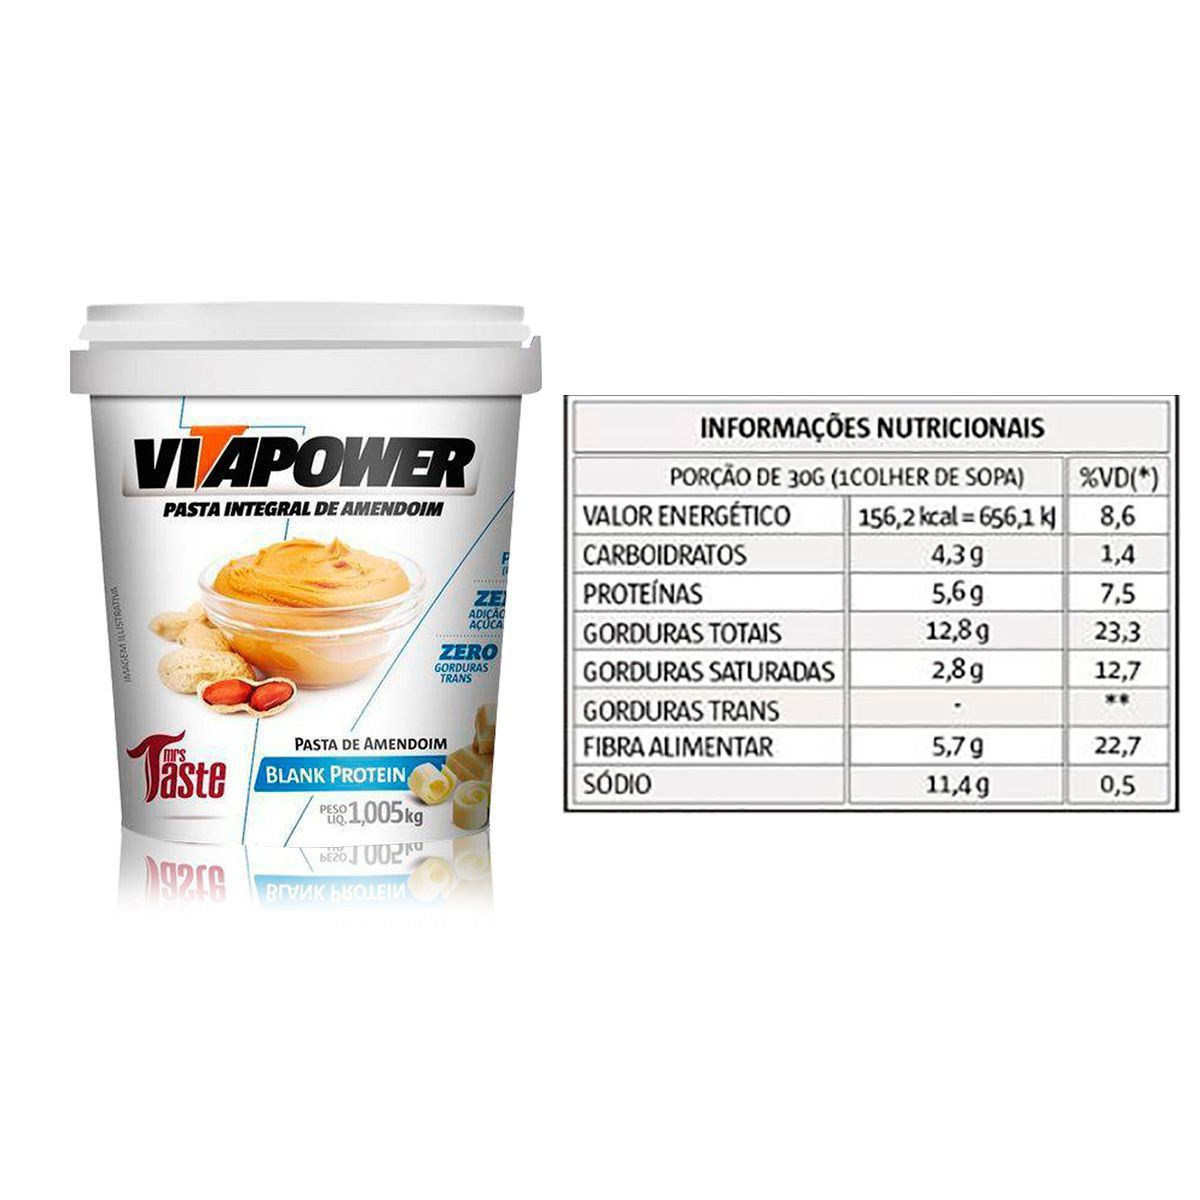 PASTA DE AMENDOIM CHOCOLATE BRANCO (1,005KG) VITAPOWER